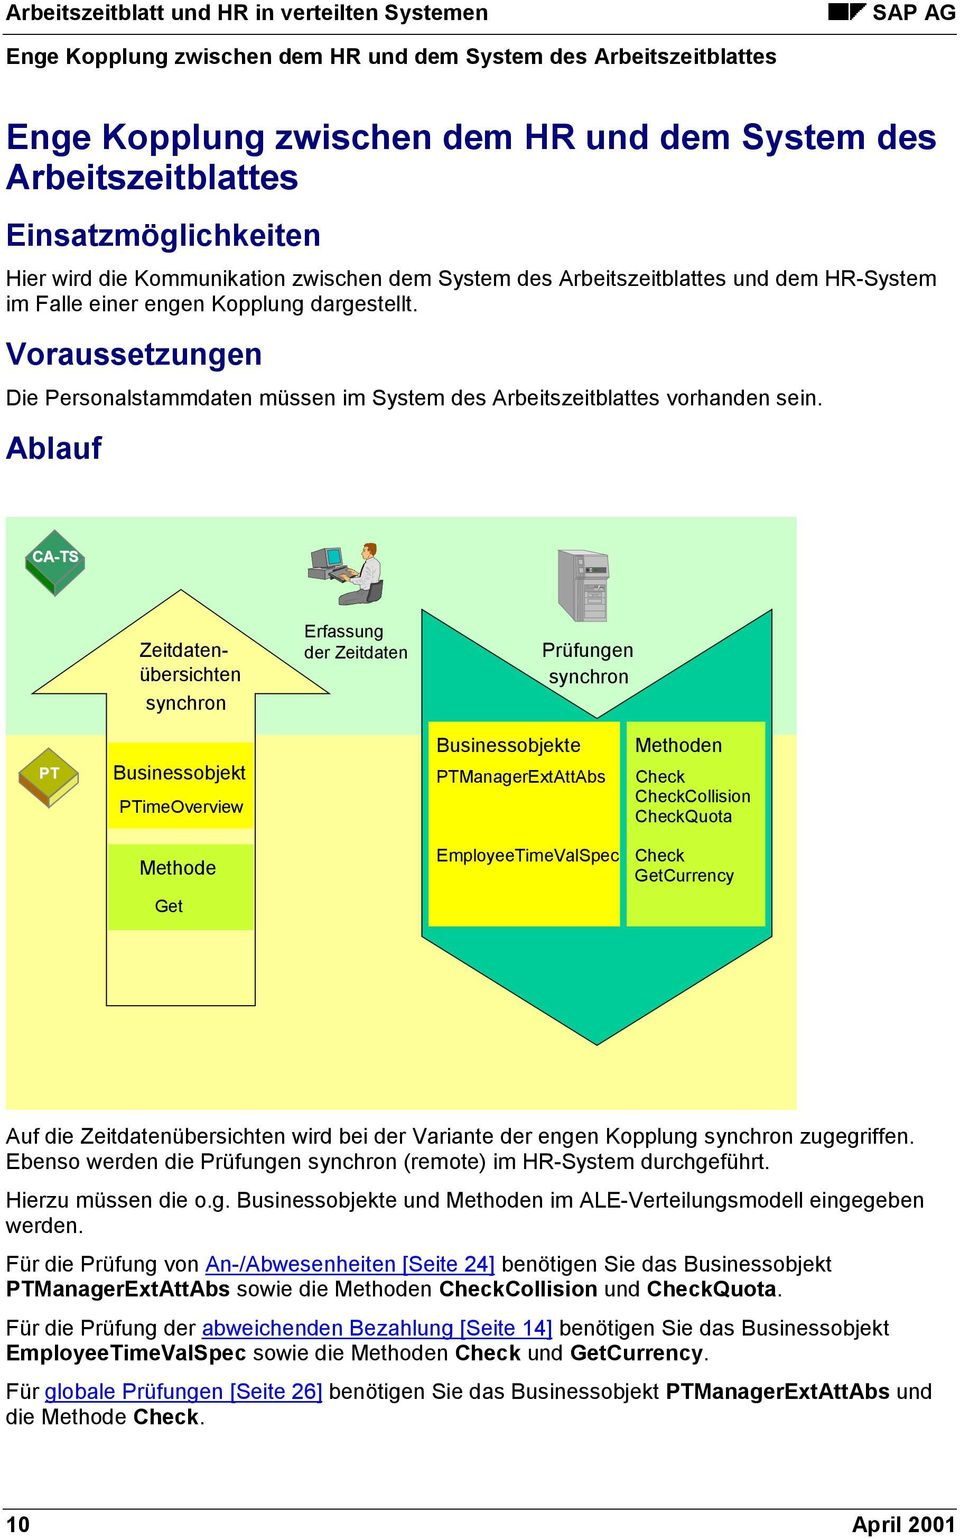 Ablauf CA-TS Zeitdatenübersichten synchron Erfassung der Zeitdaten Prüfungen synchron PT PTimeOverview e PTManagerExtAttAbs n Check CheckCollision CheckQuota EmployeeTimeValSpec Check GetCurrency Get